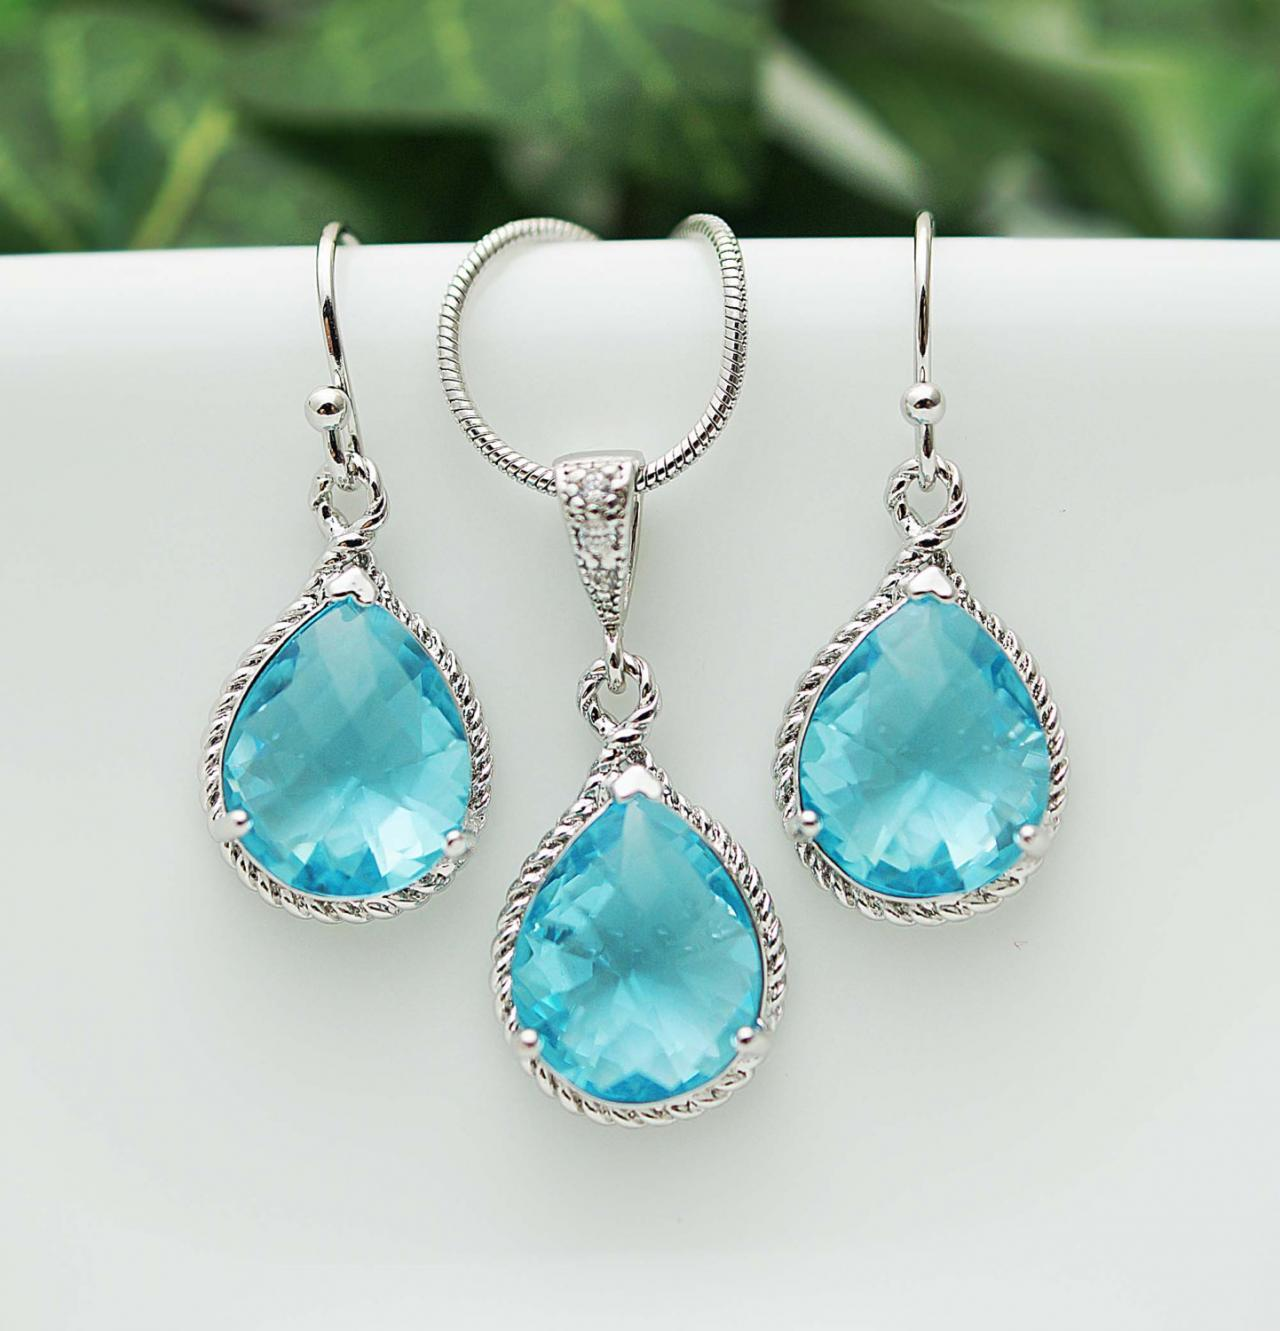 Wedding Jewelry Bridesmaid Jewelry Bridesmaid Earrings Bridesmaid Necklace Aquamarine Glass Rhodium Trimmed Pear Cut Bridesmaid gift